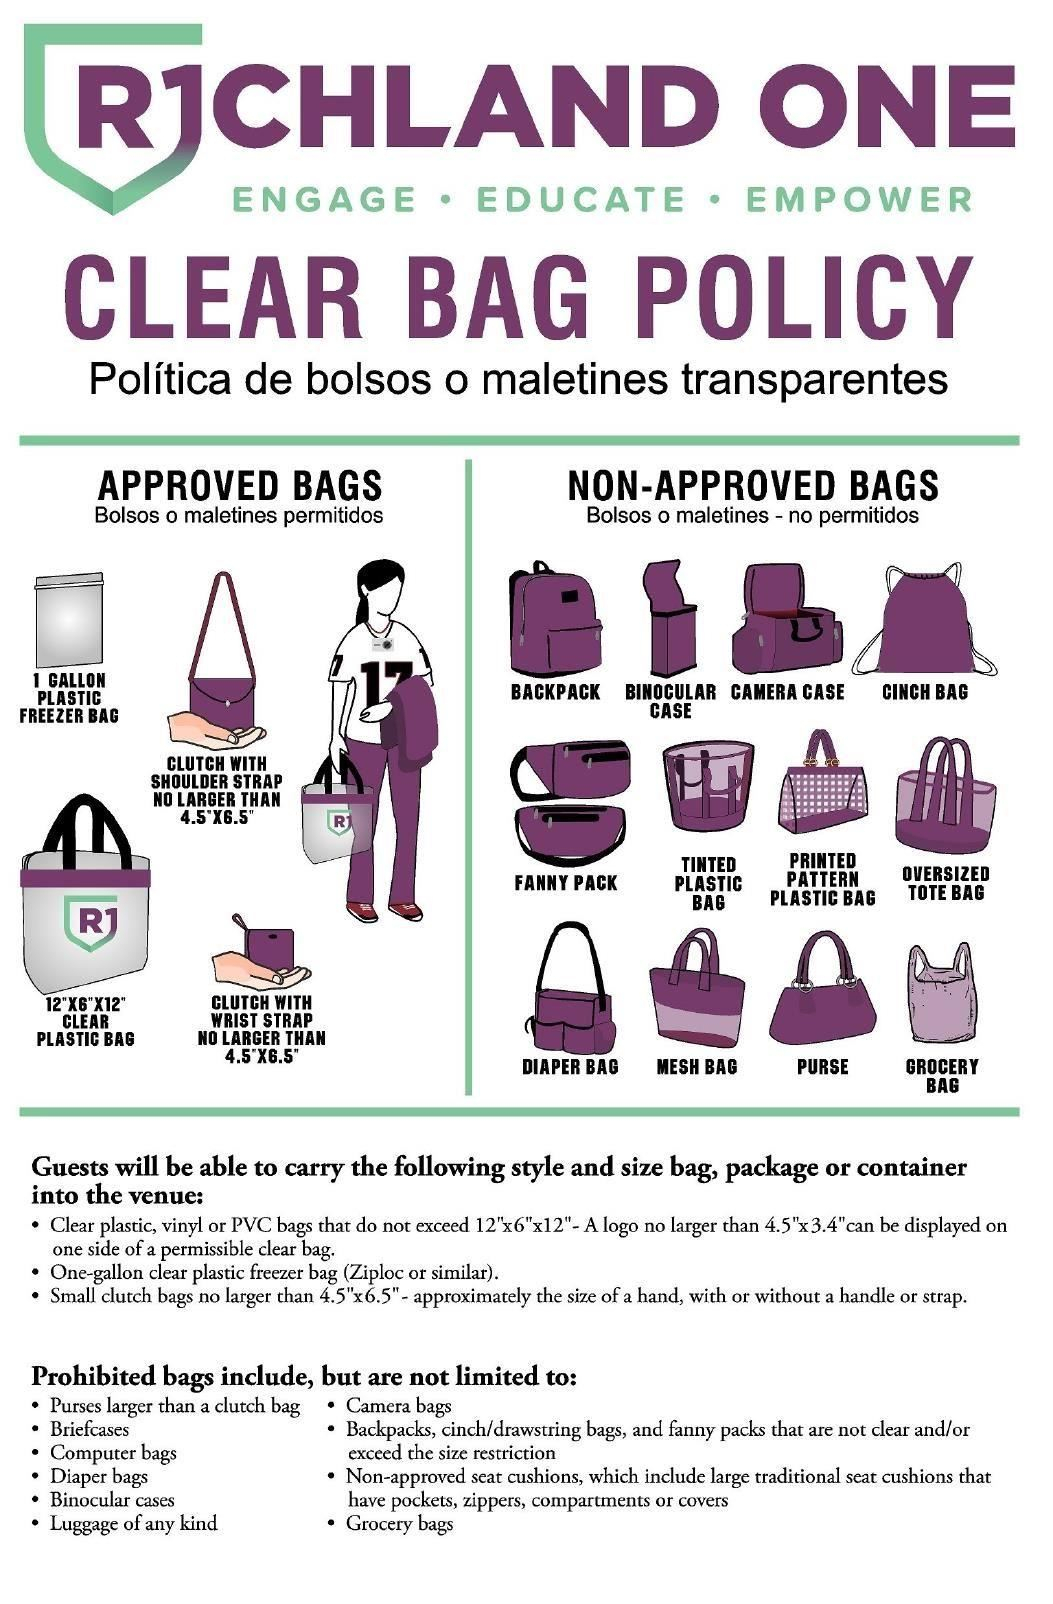 Richland One Implements Clear Bag Policy intended for Richland 1 Calendar